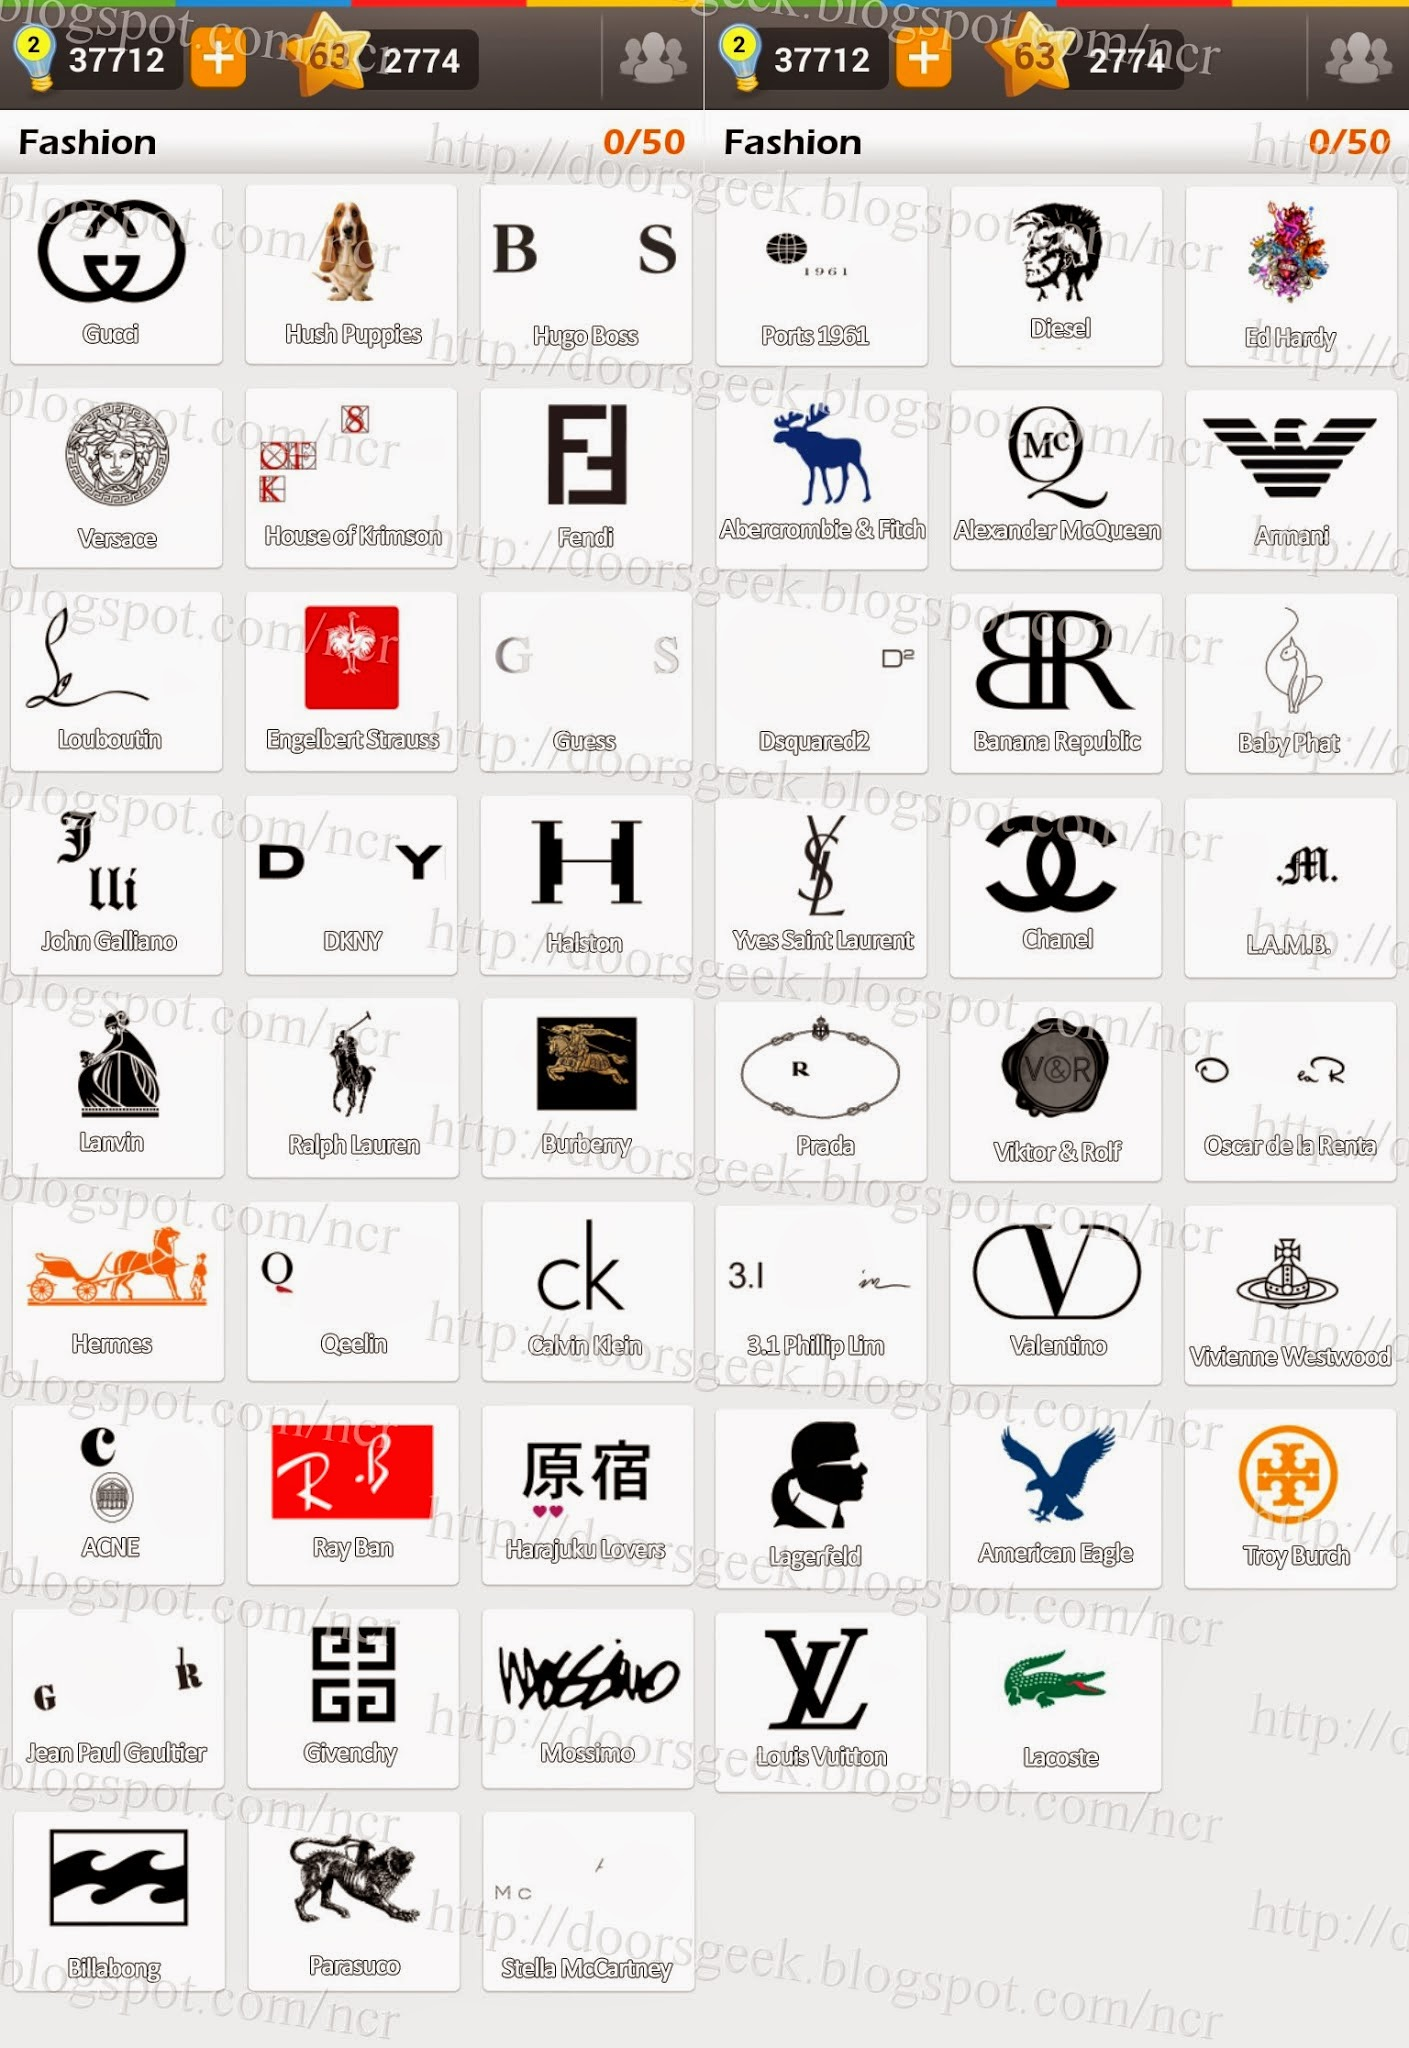 Logo Game Guess The Brand Bonus Fashion Doors Geek